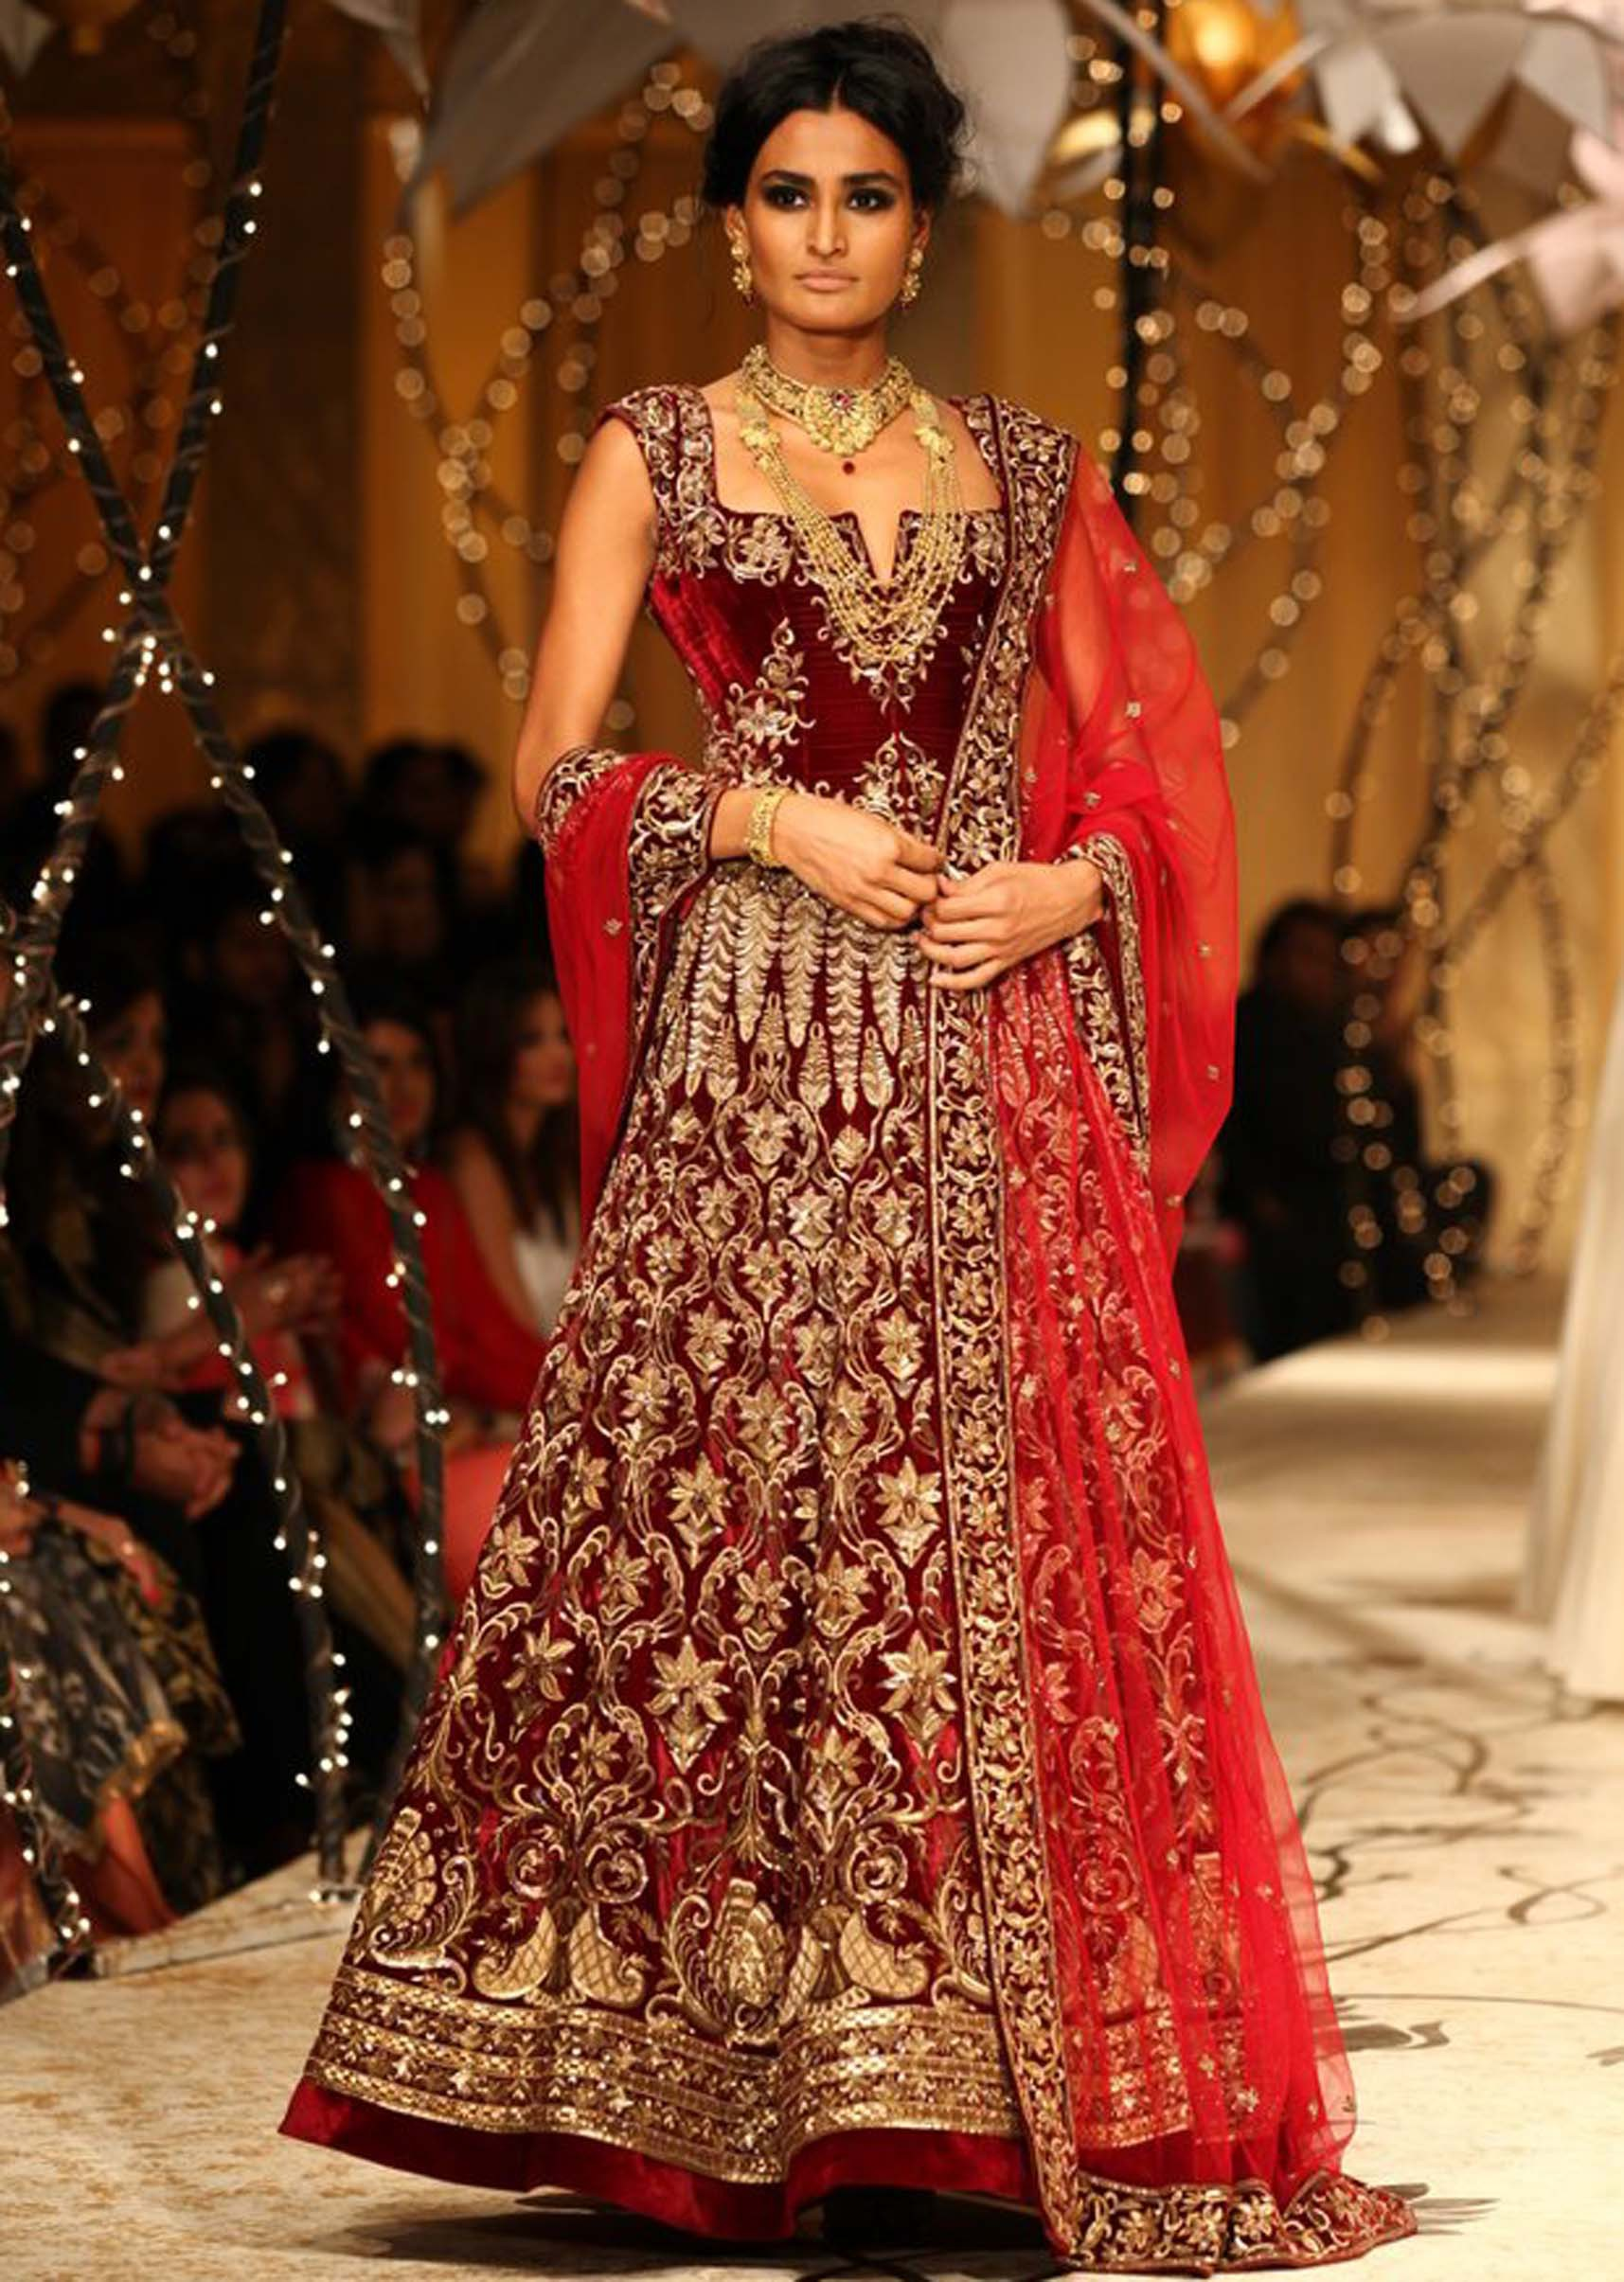 Pakistani bridal frock 2017 in maroon color